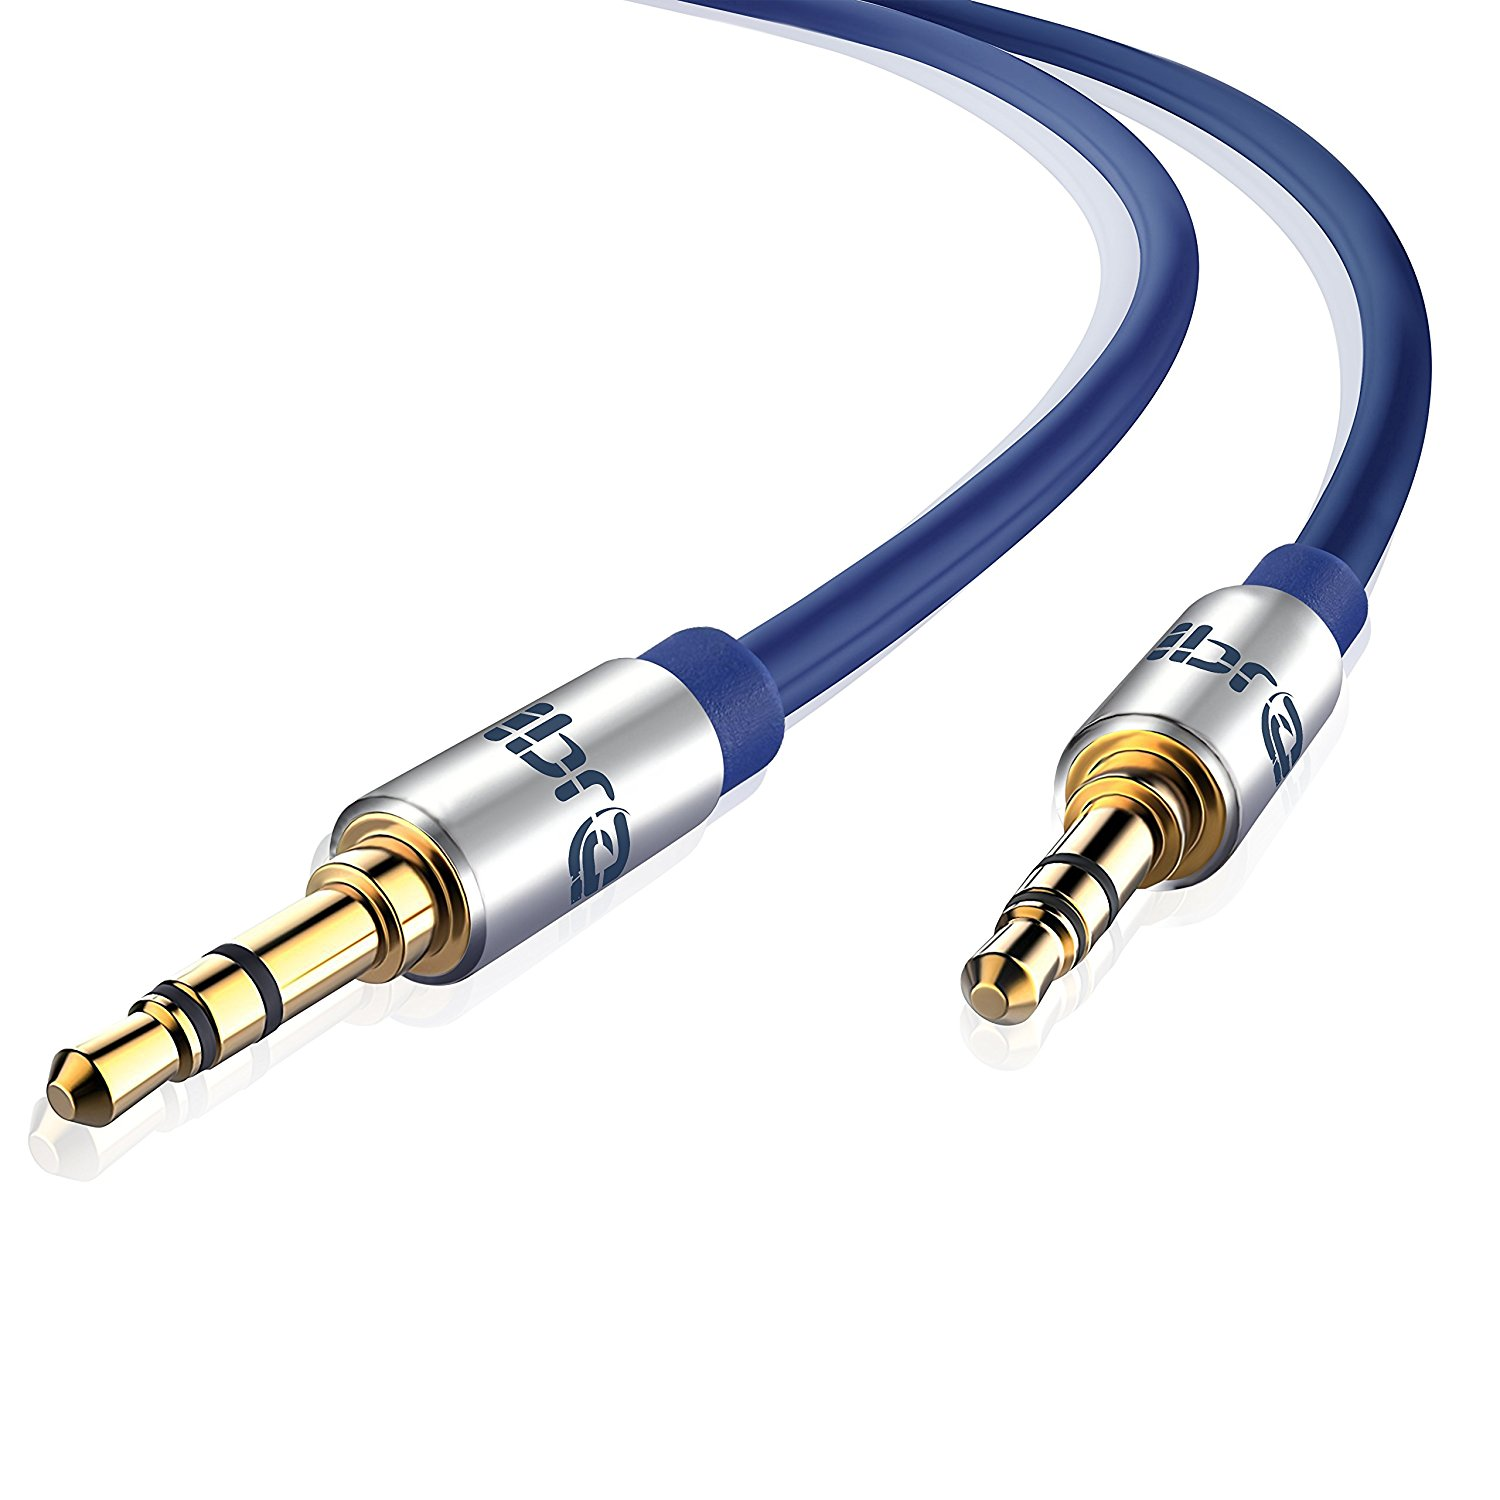 Aux Cable 5M 3.5mm Stereo Pro Auxiliary Audio Cable - for Beats Headphones Apple iPod iPhone iPad Samsung LG Smartphone MP3 Player Home / Car etc - IBRA Blue